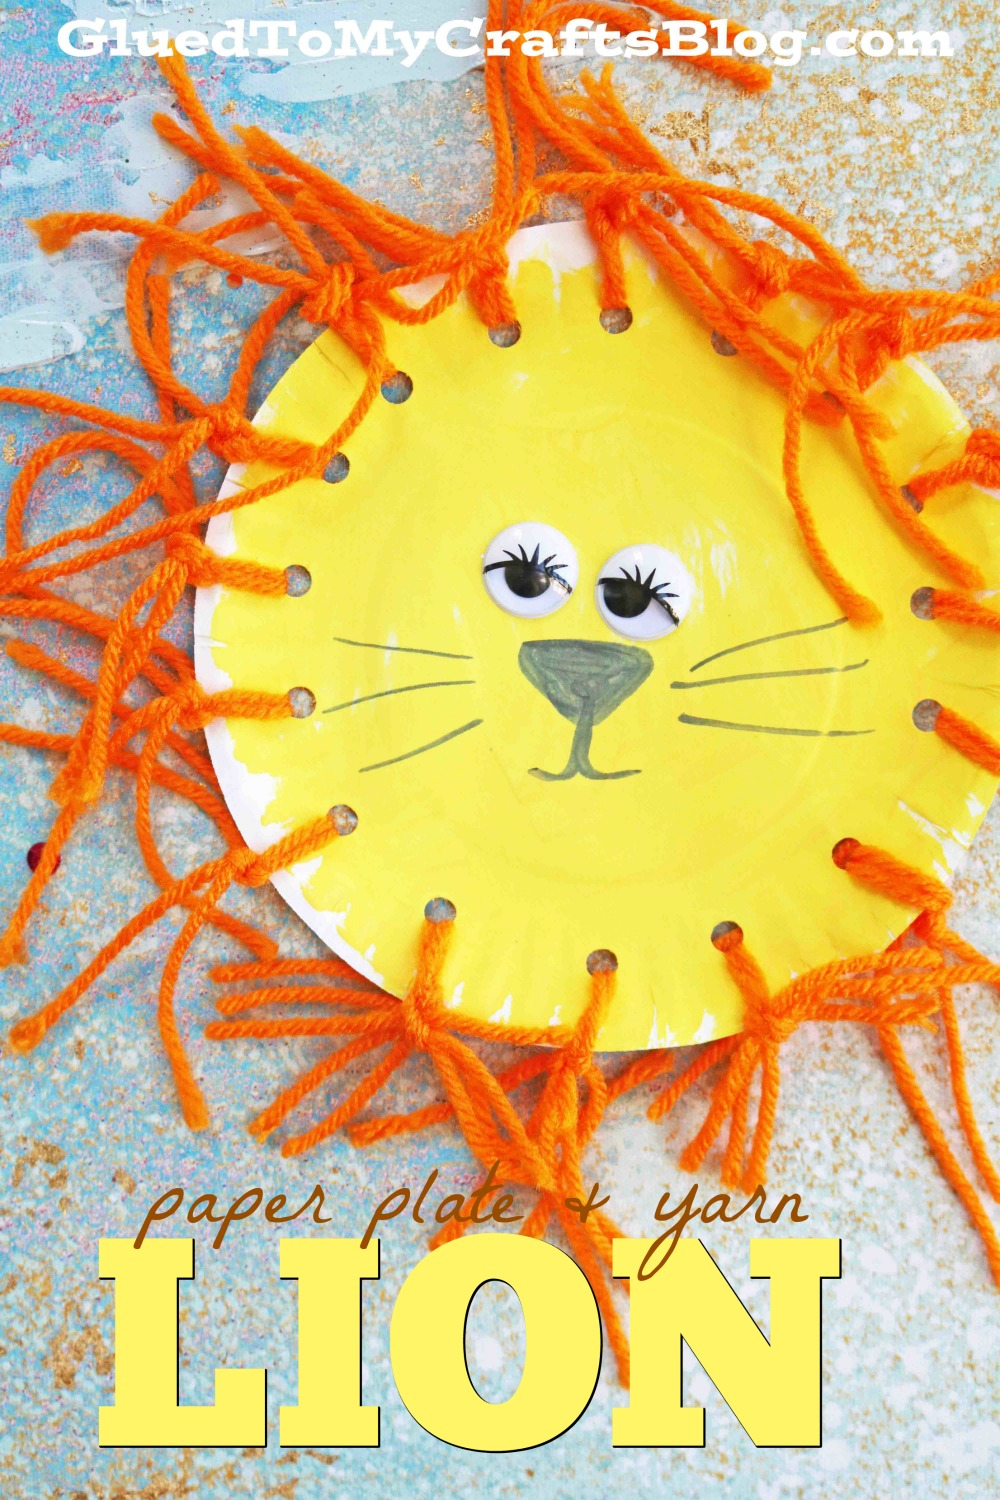 Paper Plate Yarn Lion - Kid Craft - Glued To My Crafts